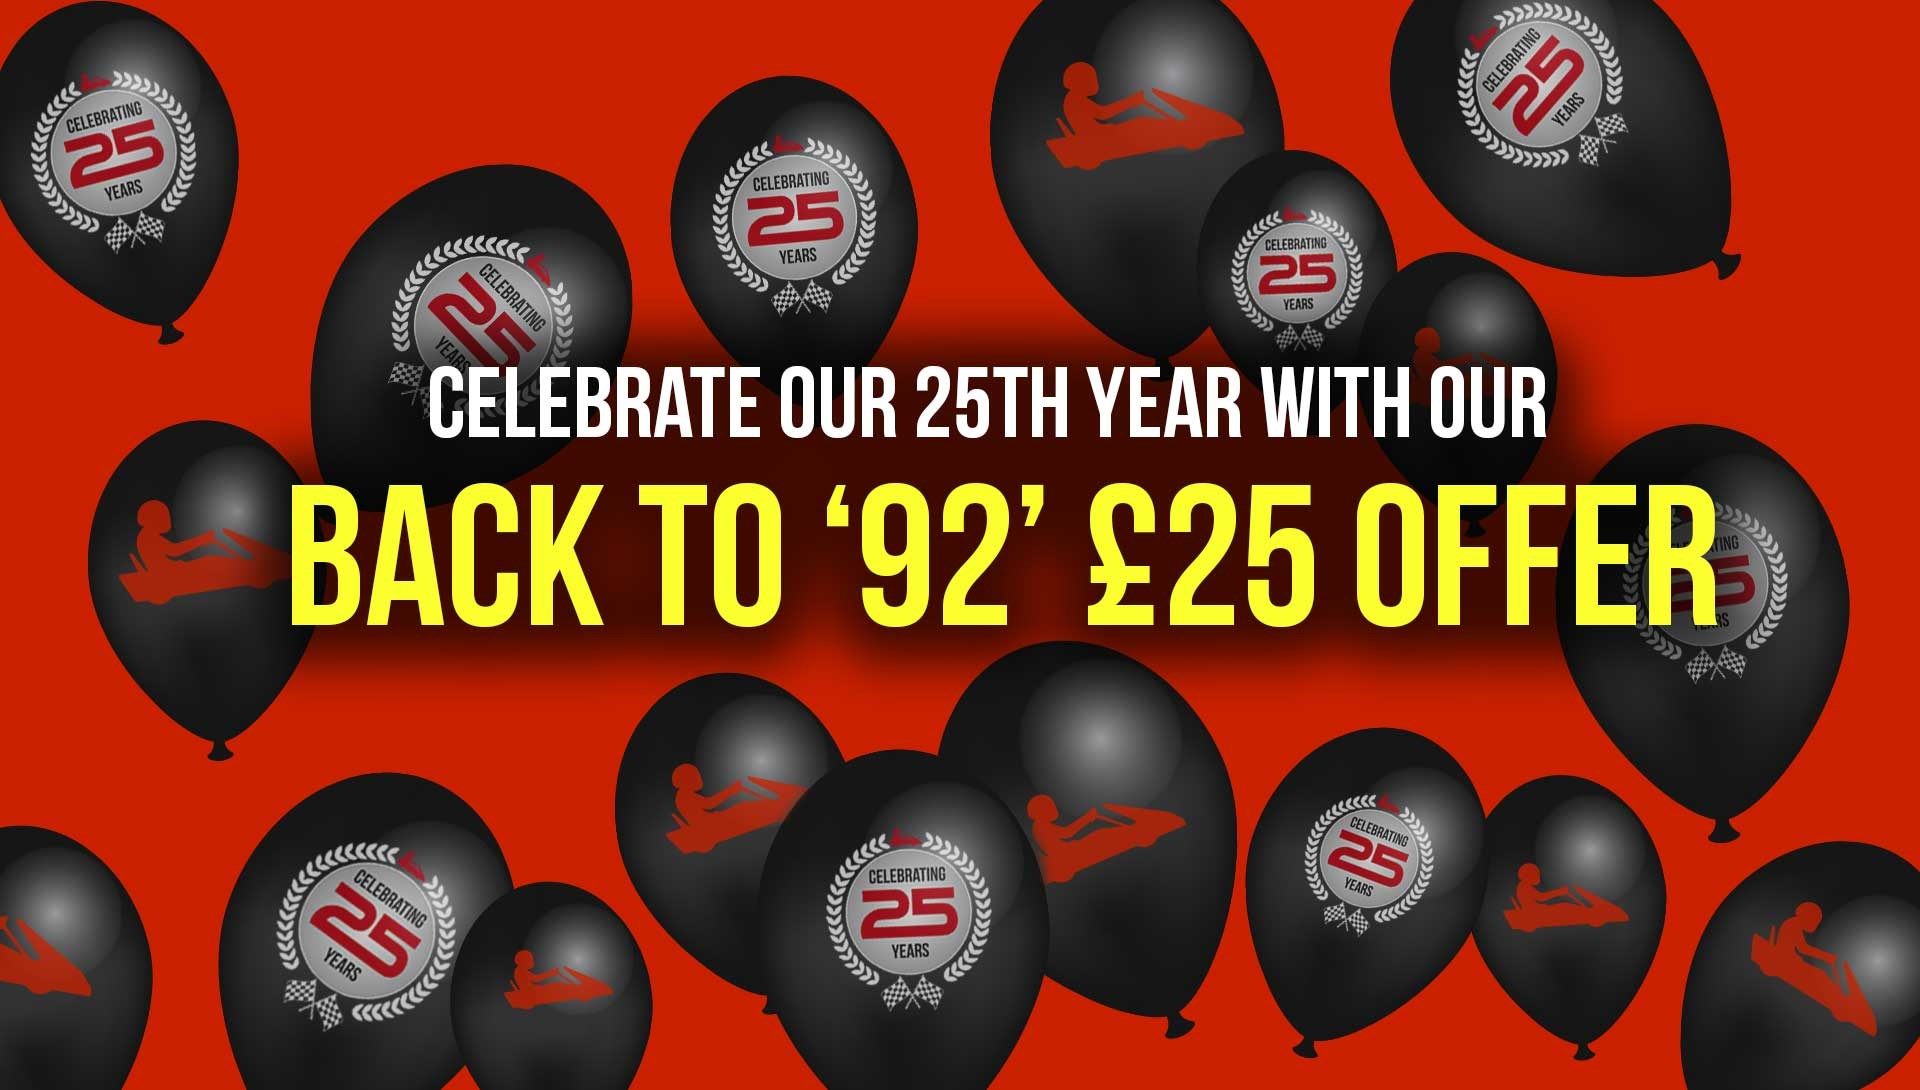 GO KARTING OFFERS - Back to 1992 £25 racing